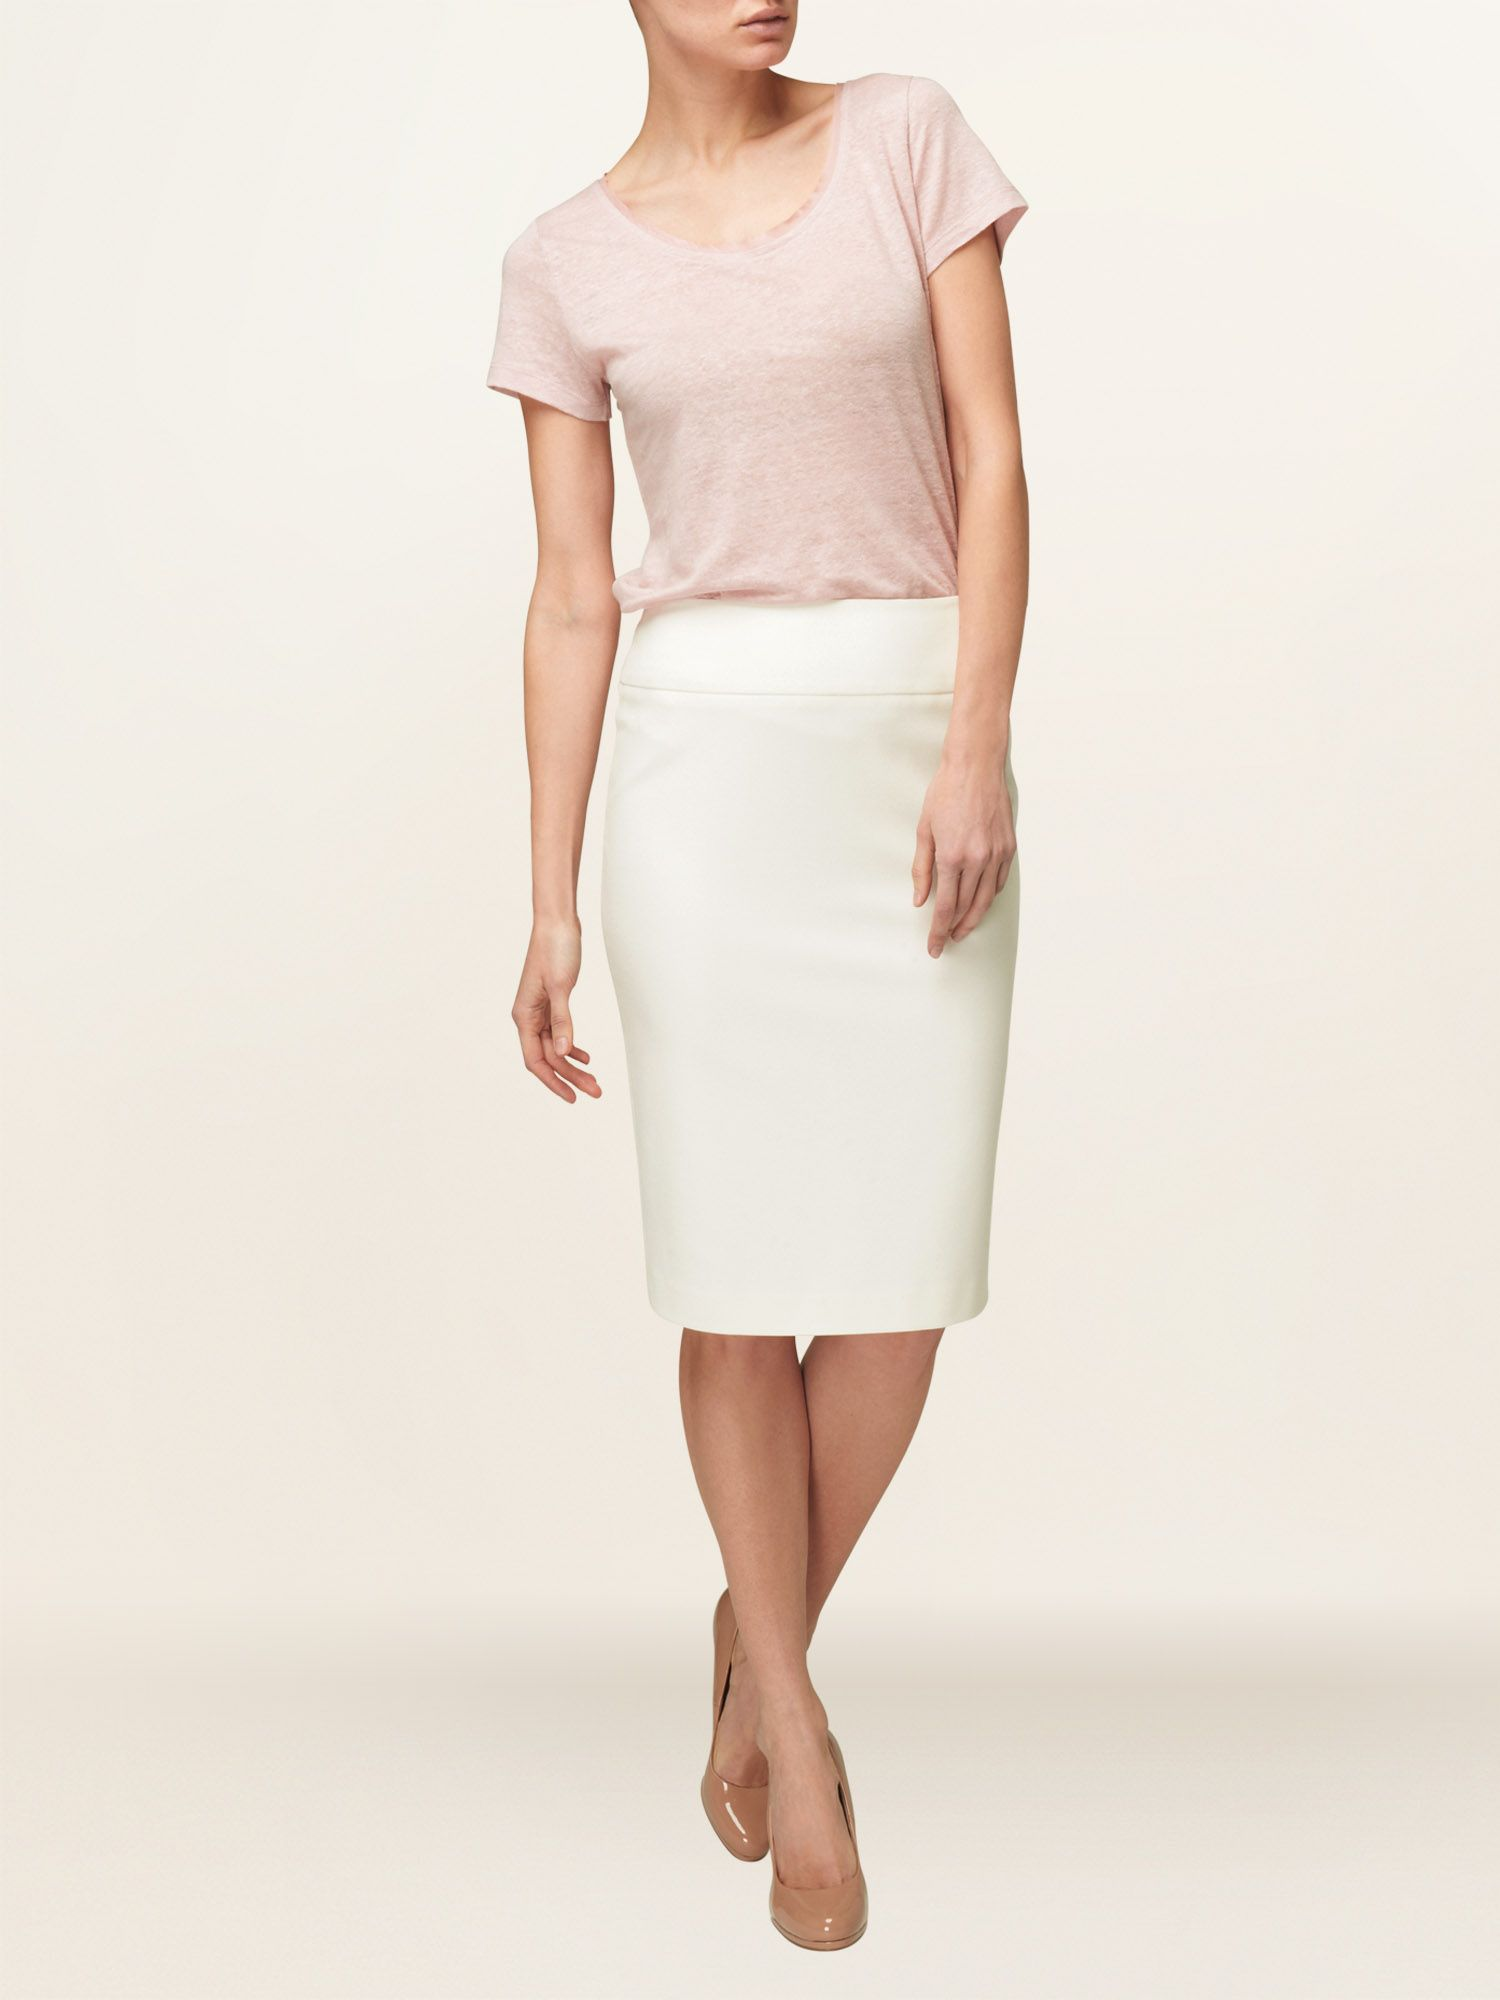 Lois pleat back detail skirt